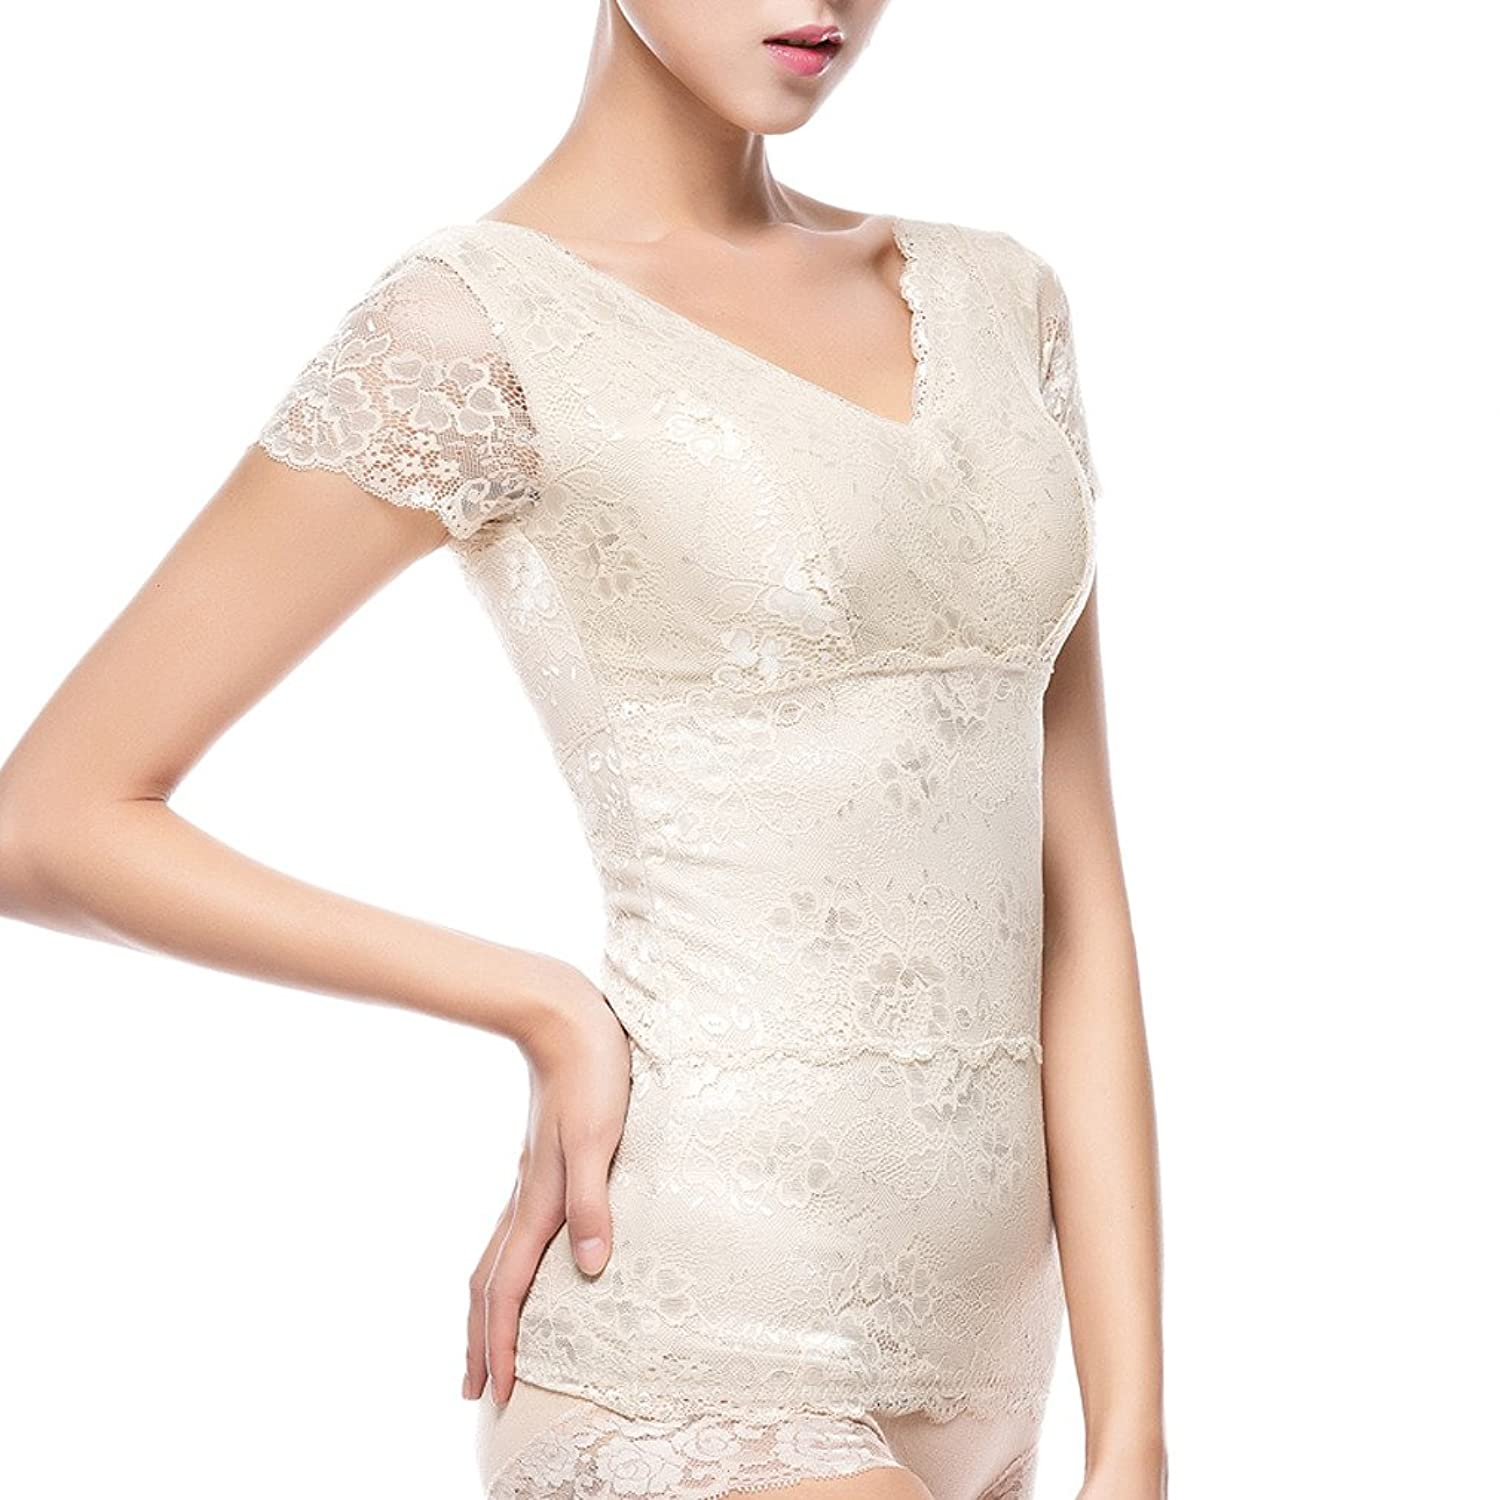 Comfortableinside Women's V-neck Thicken Fleeced Lining Lace Short Sleeve Thermal Underwear Tops